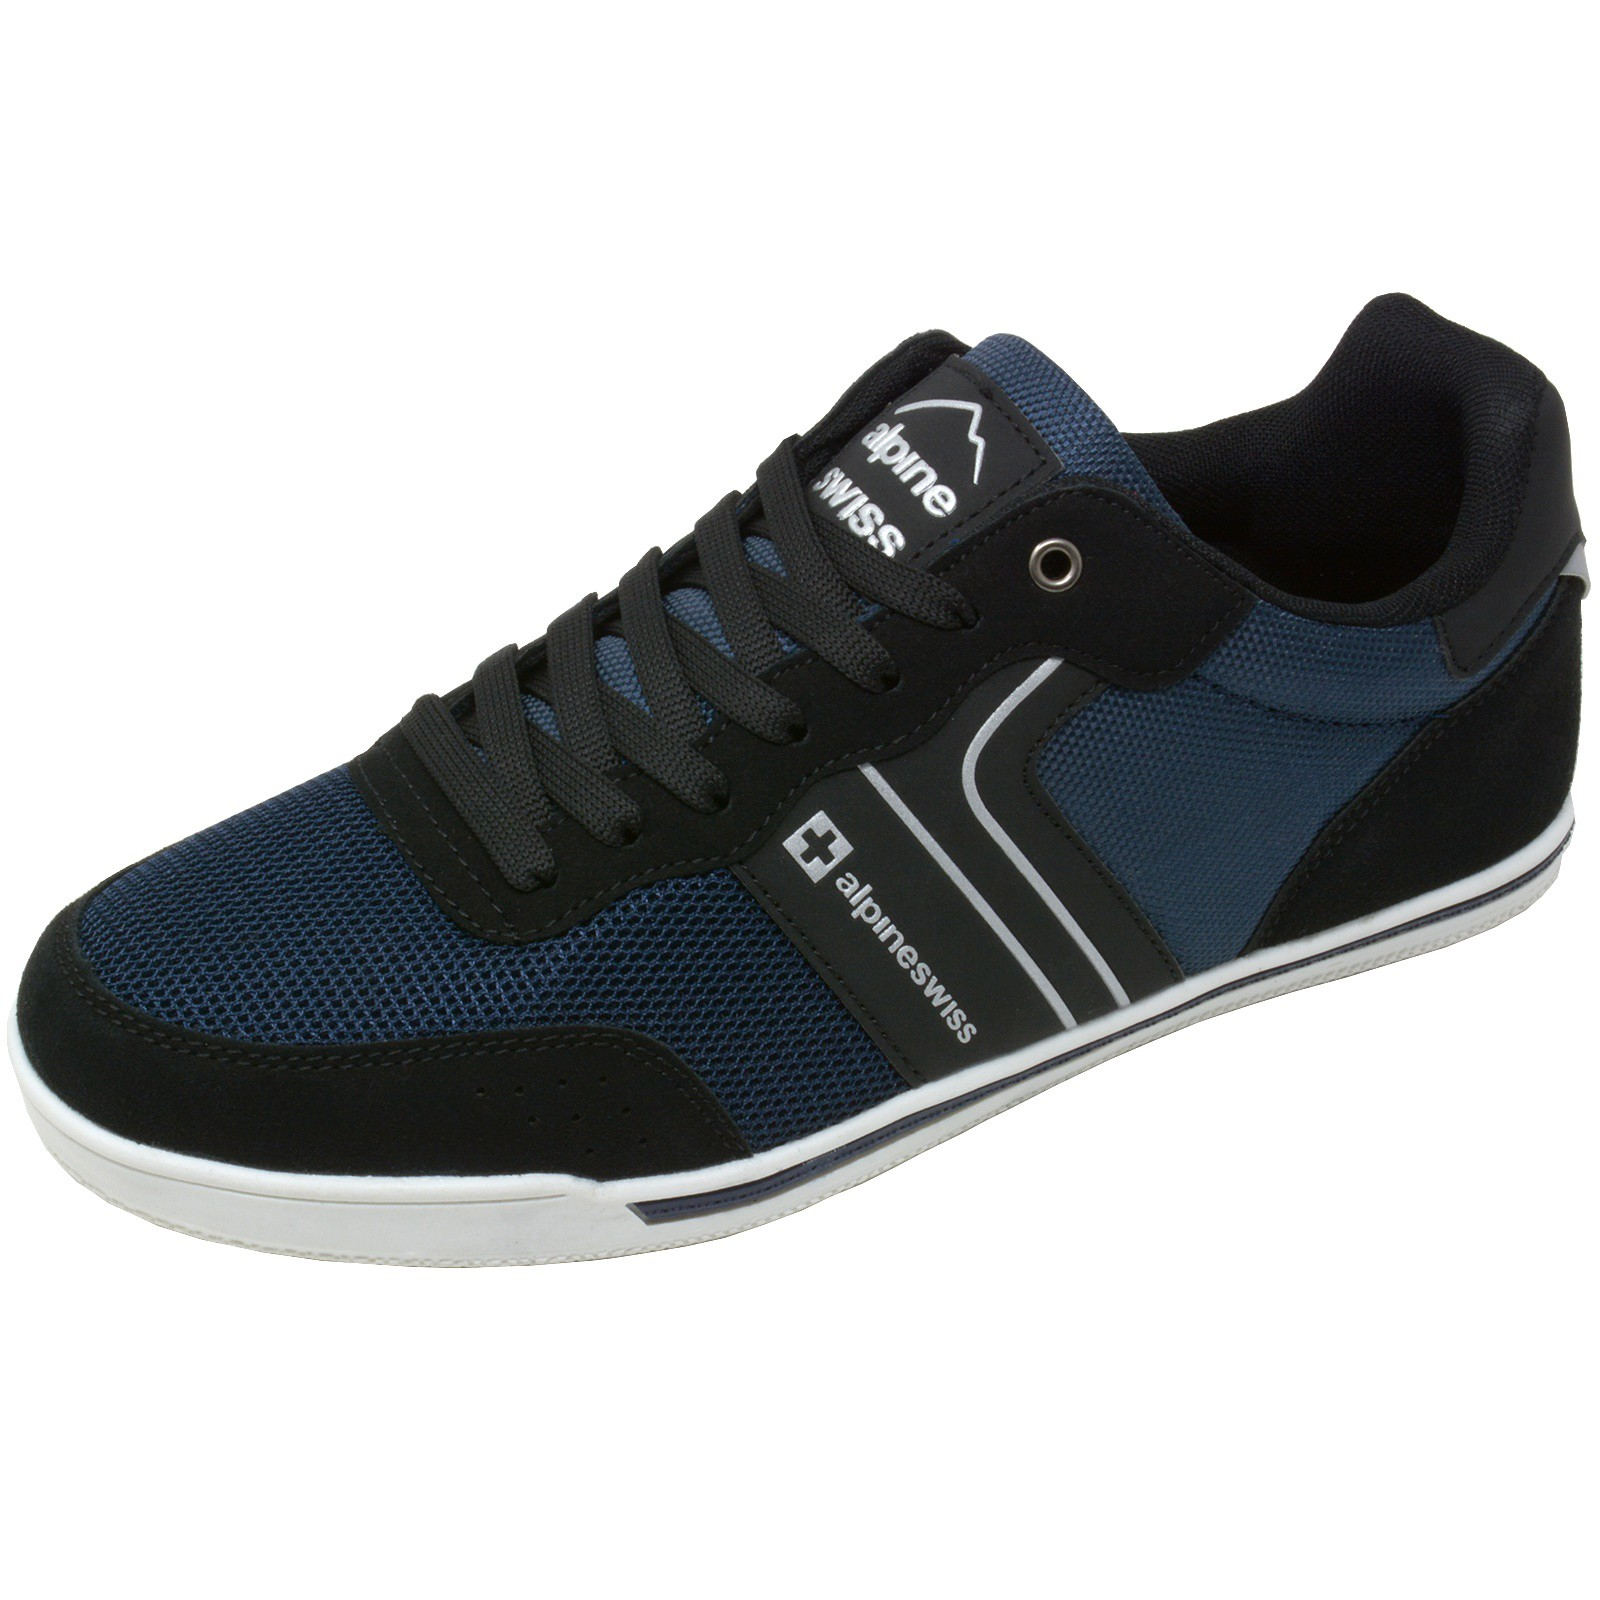 Alpine-Swiss-Liam-Mens-Fashion-Sneakers-Suede-Trim-Low-Top-Lace-Up-Tennis-Shoes thumbnail 39